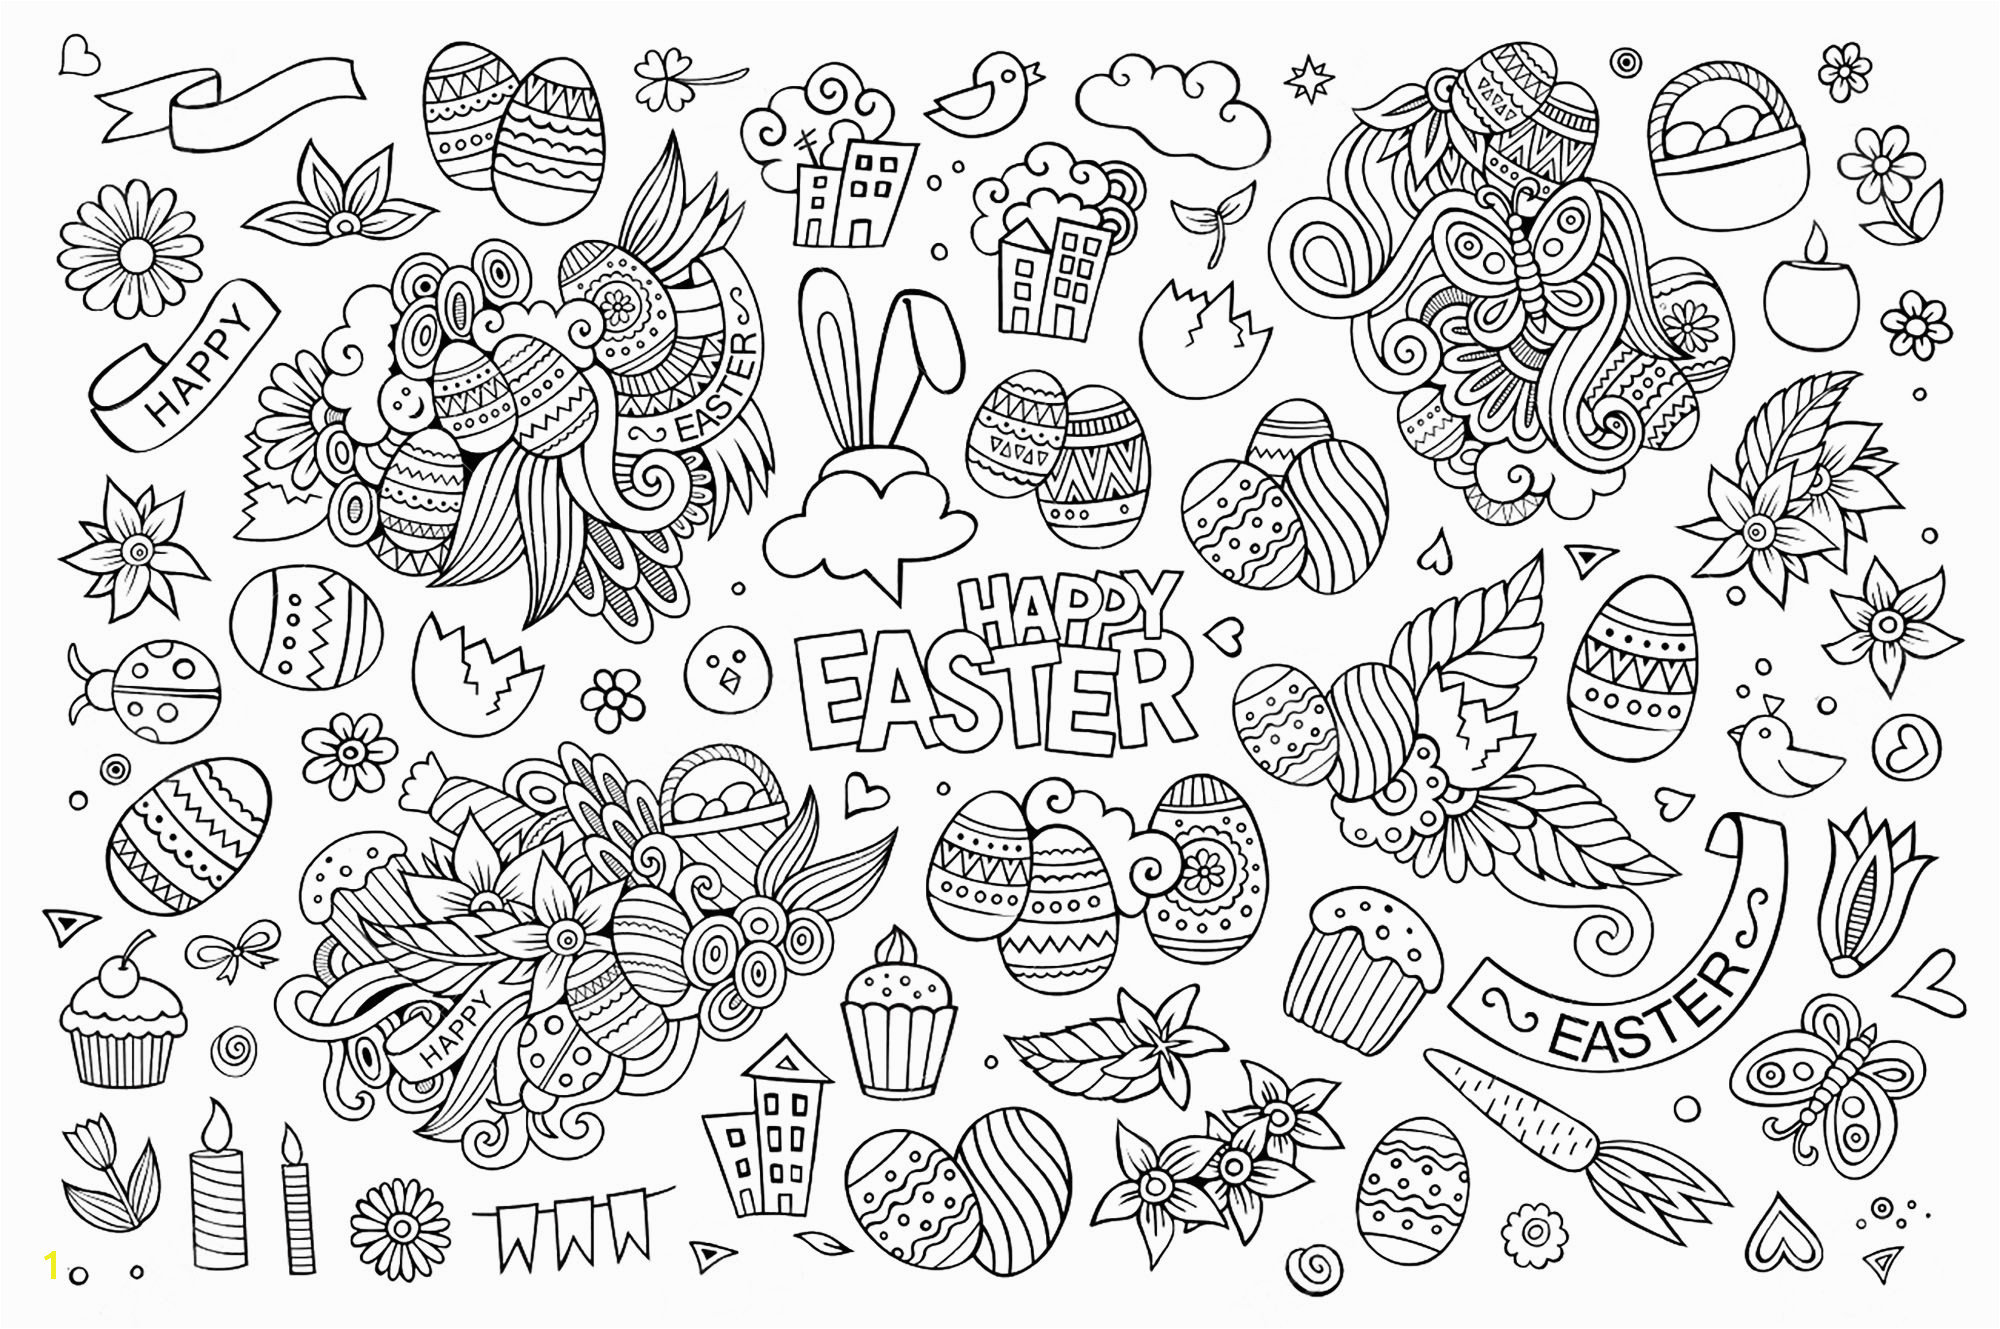 coloring adult simple easter doodle by olga kostenko